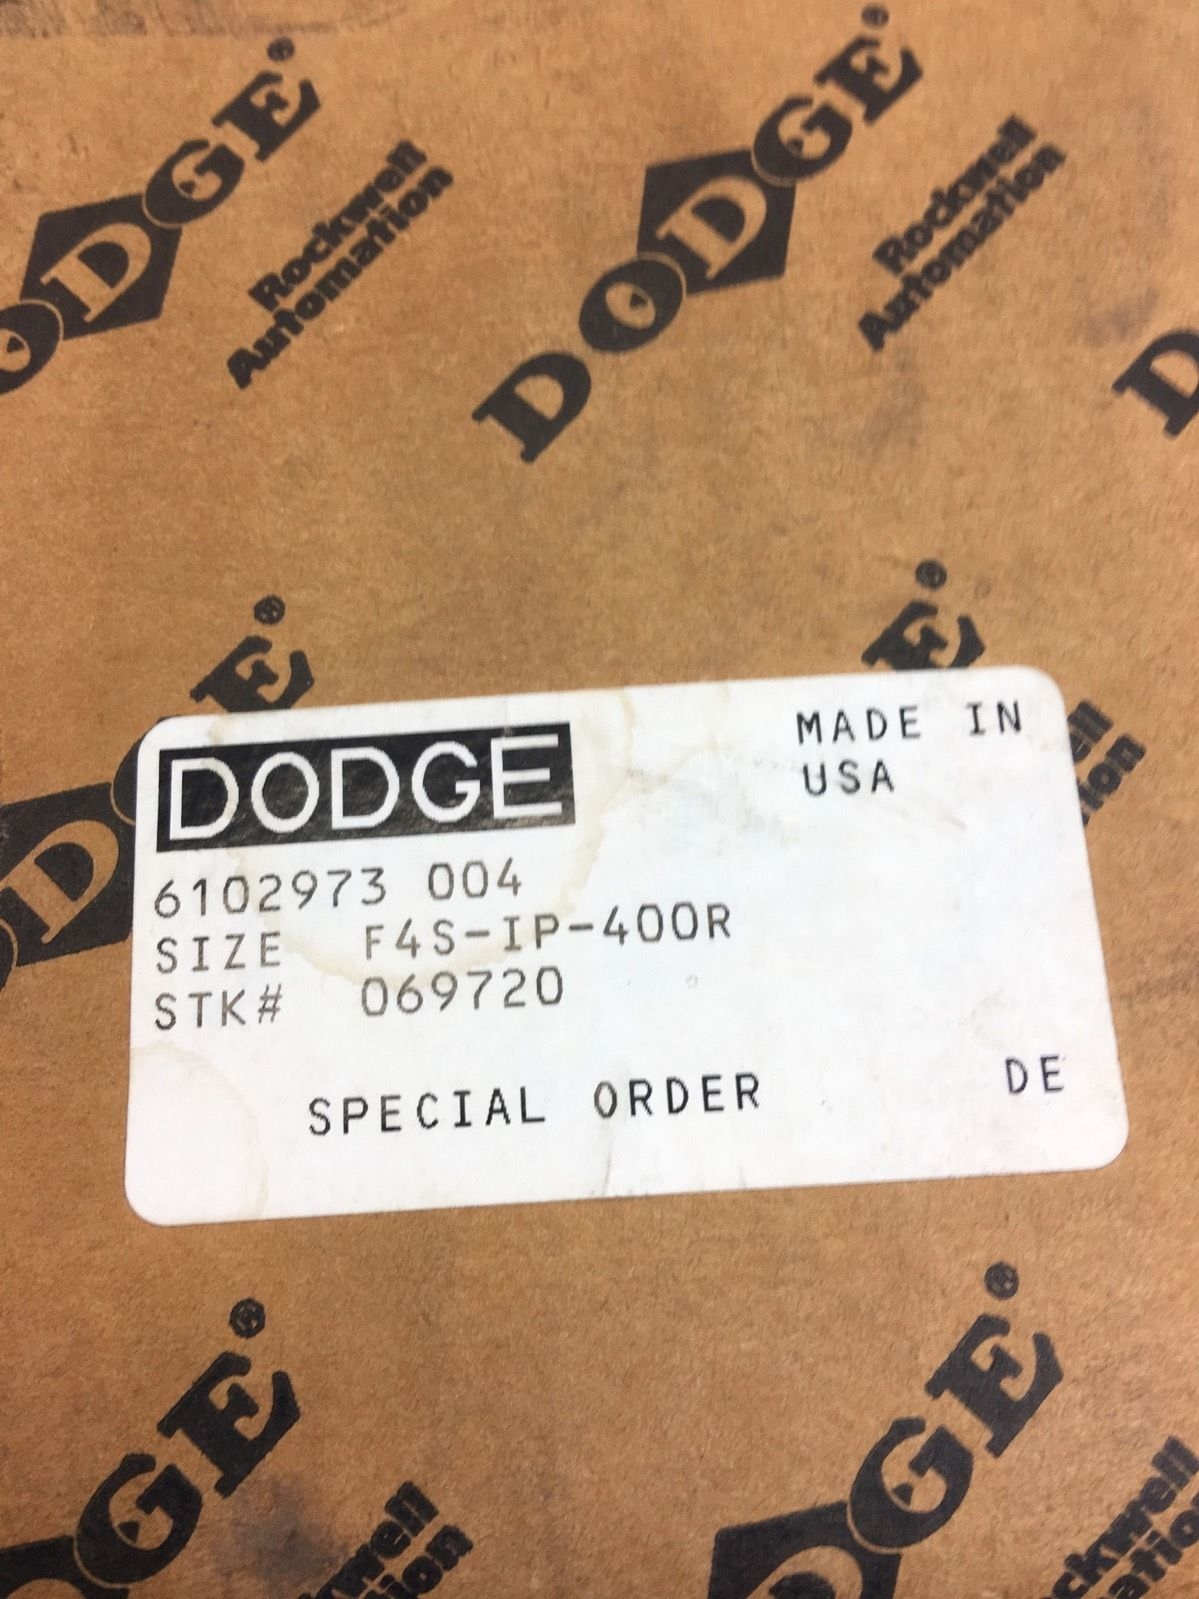 NEW IN BOXÂ DODGE 069720 F4S-IP-400R FLANGE BEARING, FAST SHIPPING! (B377) 2